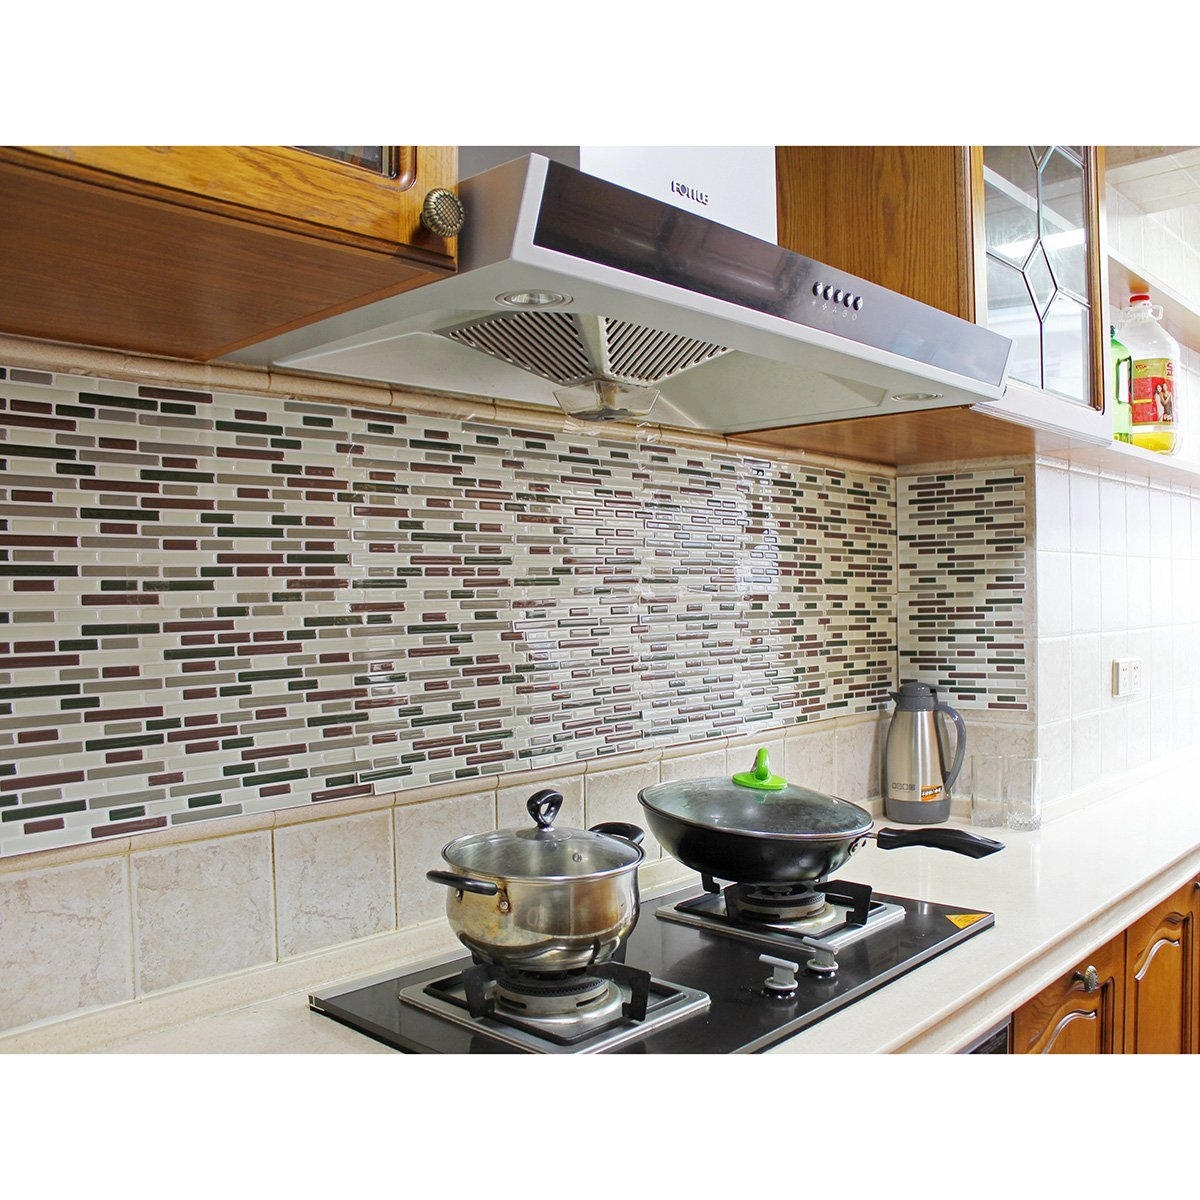 Lowes Tiles | Peel and Stick Tile | 18x18 Peel and Stick Tile